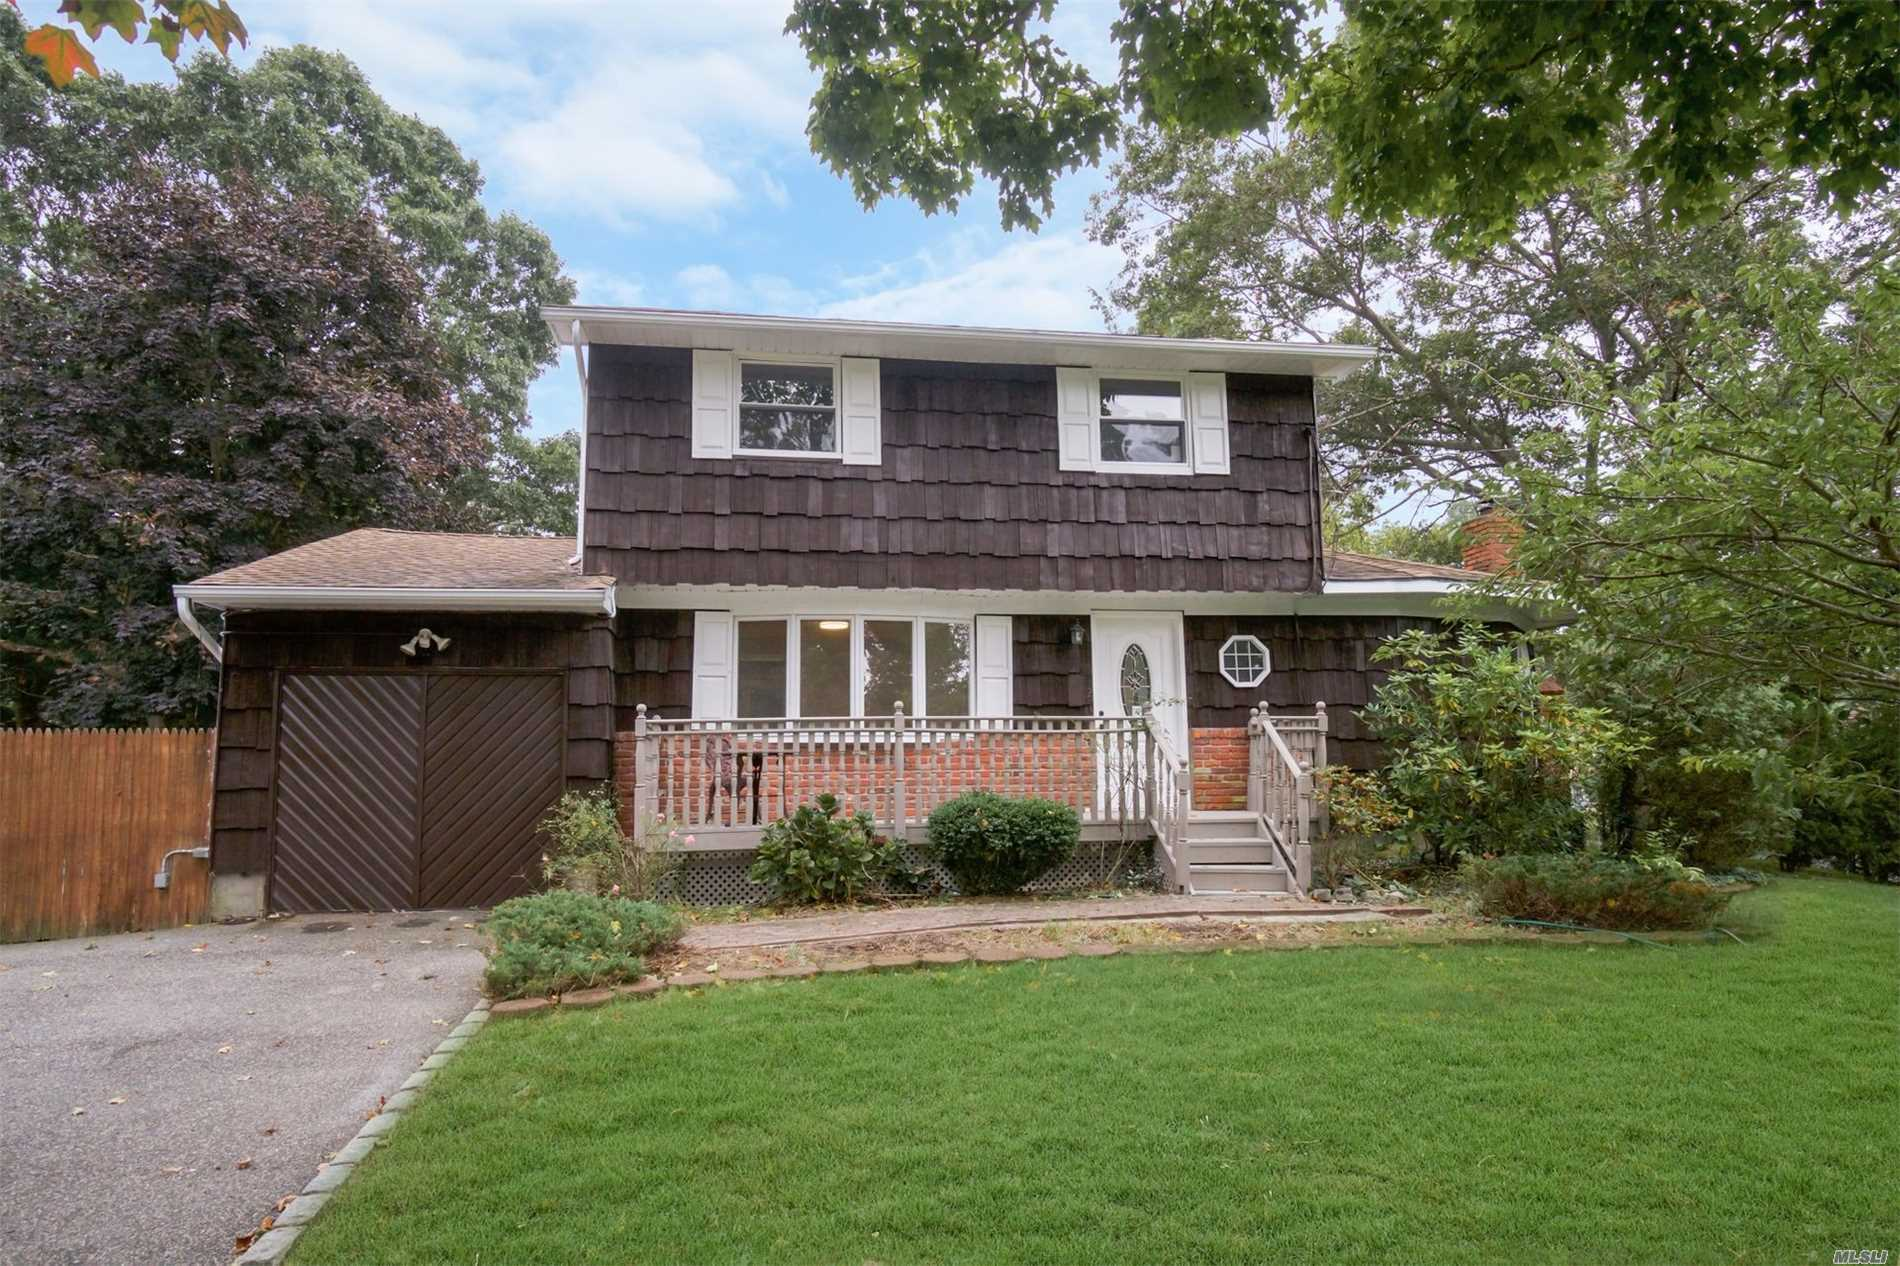 Beautifully Renovated 3 Br 3 Bath House New Kitchen, New Bath , New Floors Cedar wall Jaccuzi bath , Inground pool, Sun room with Hot tub and much more